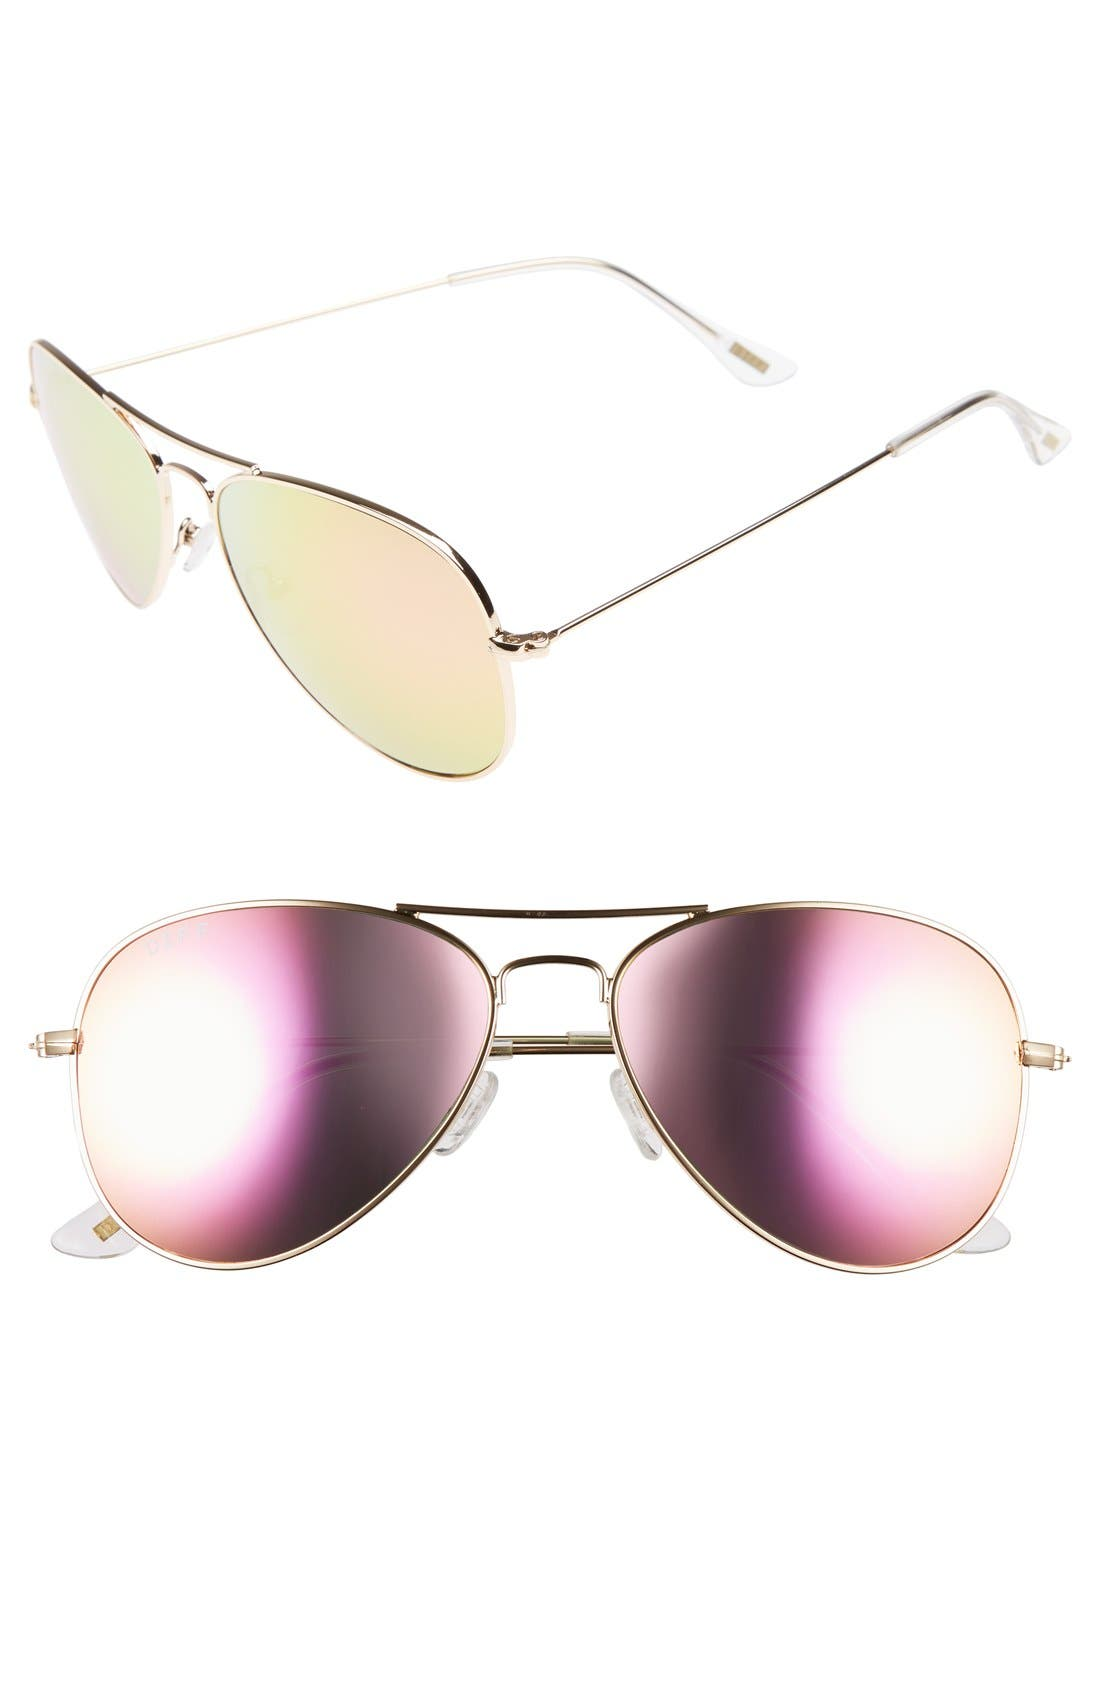 DIFF Cruz 57mm Metal Aviator Sunglasses